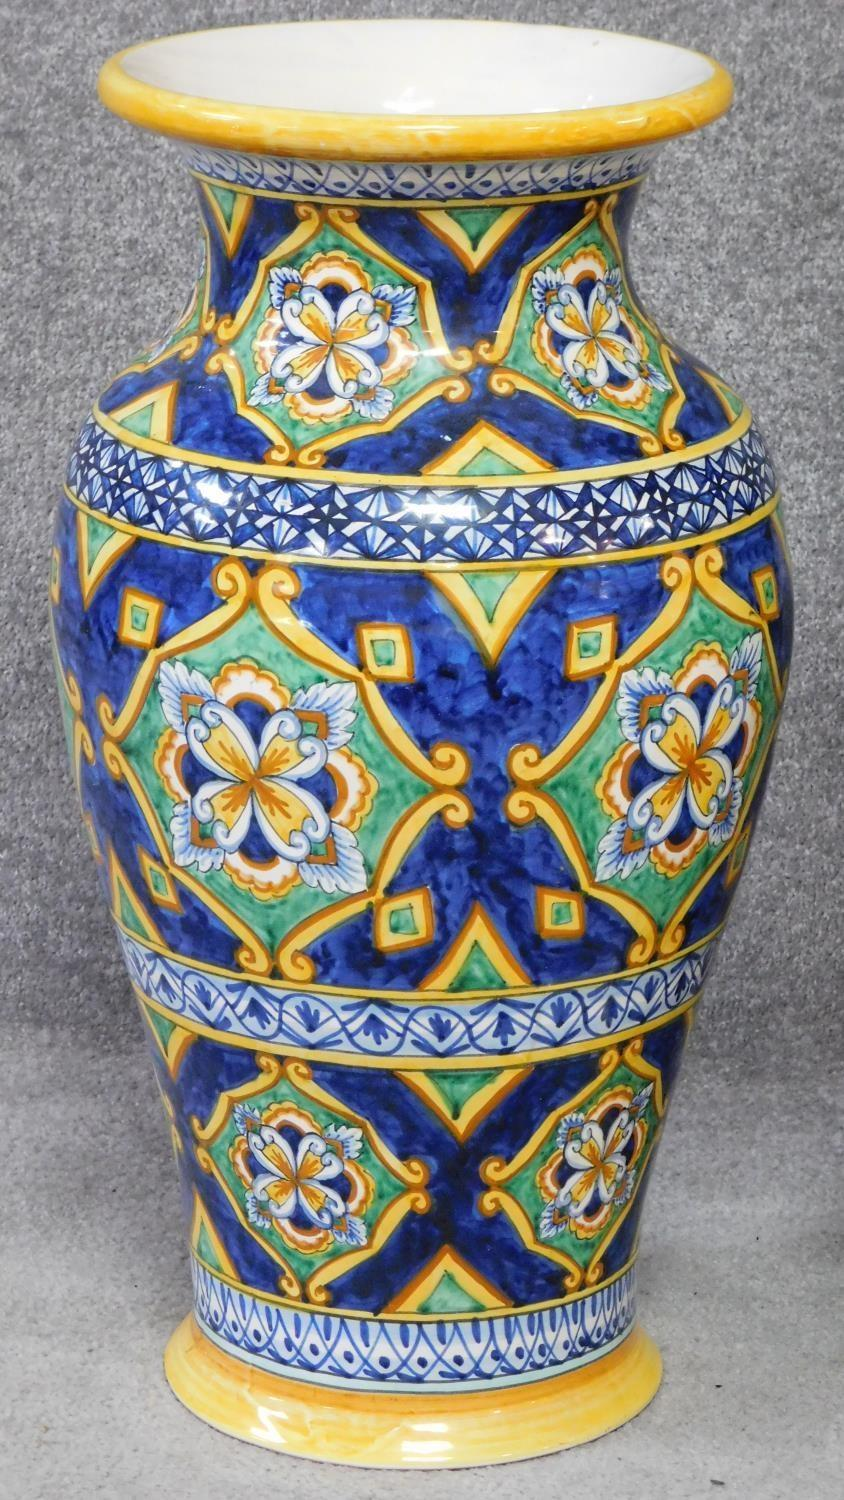 Lot 20 - Two large Italian majolica vases with colourful hand painted abstract design. Inscribed on the